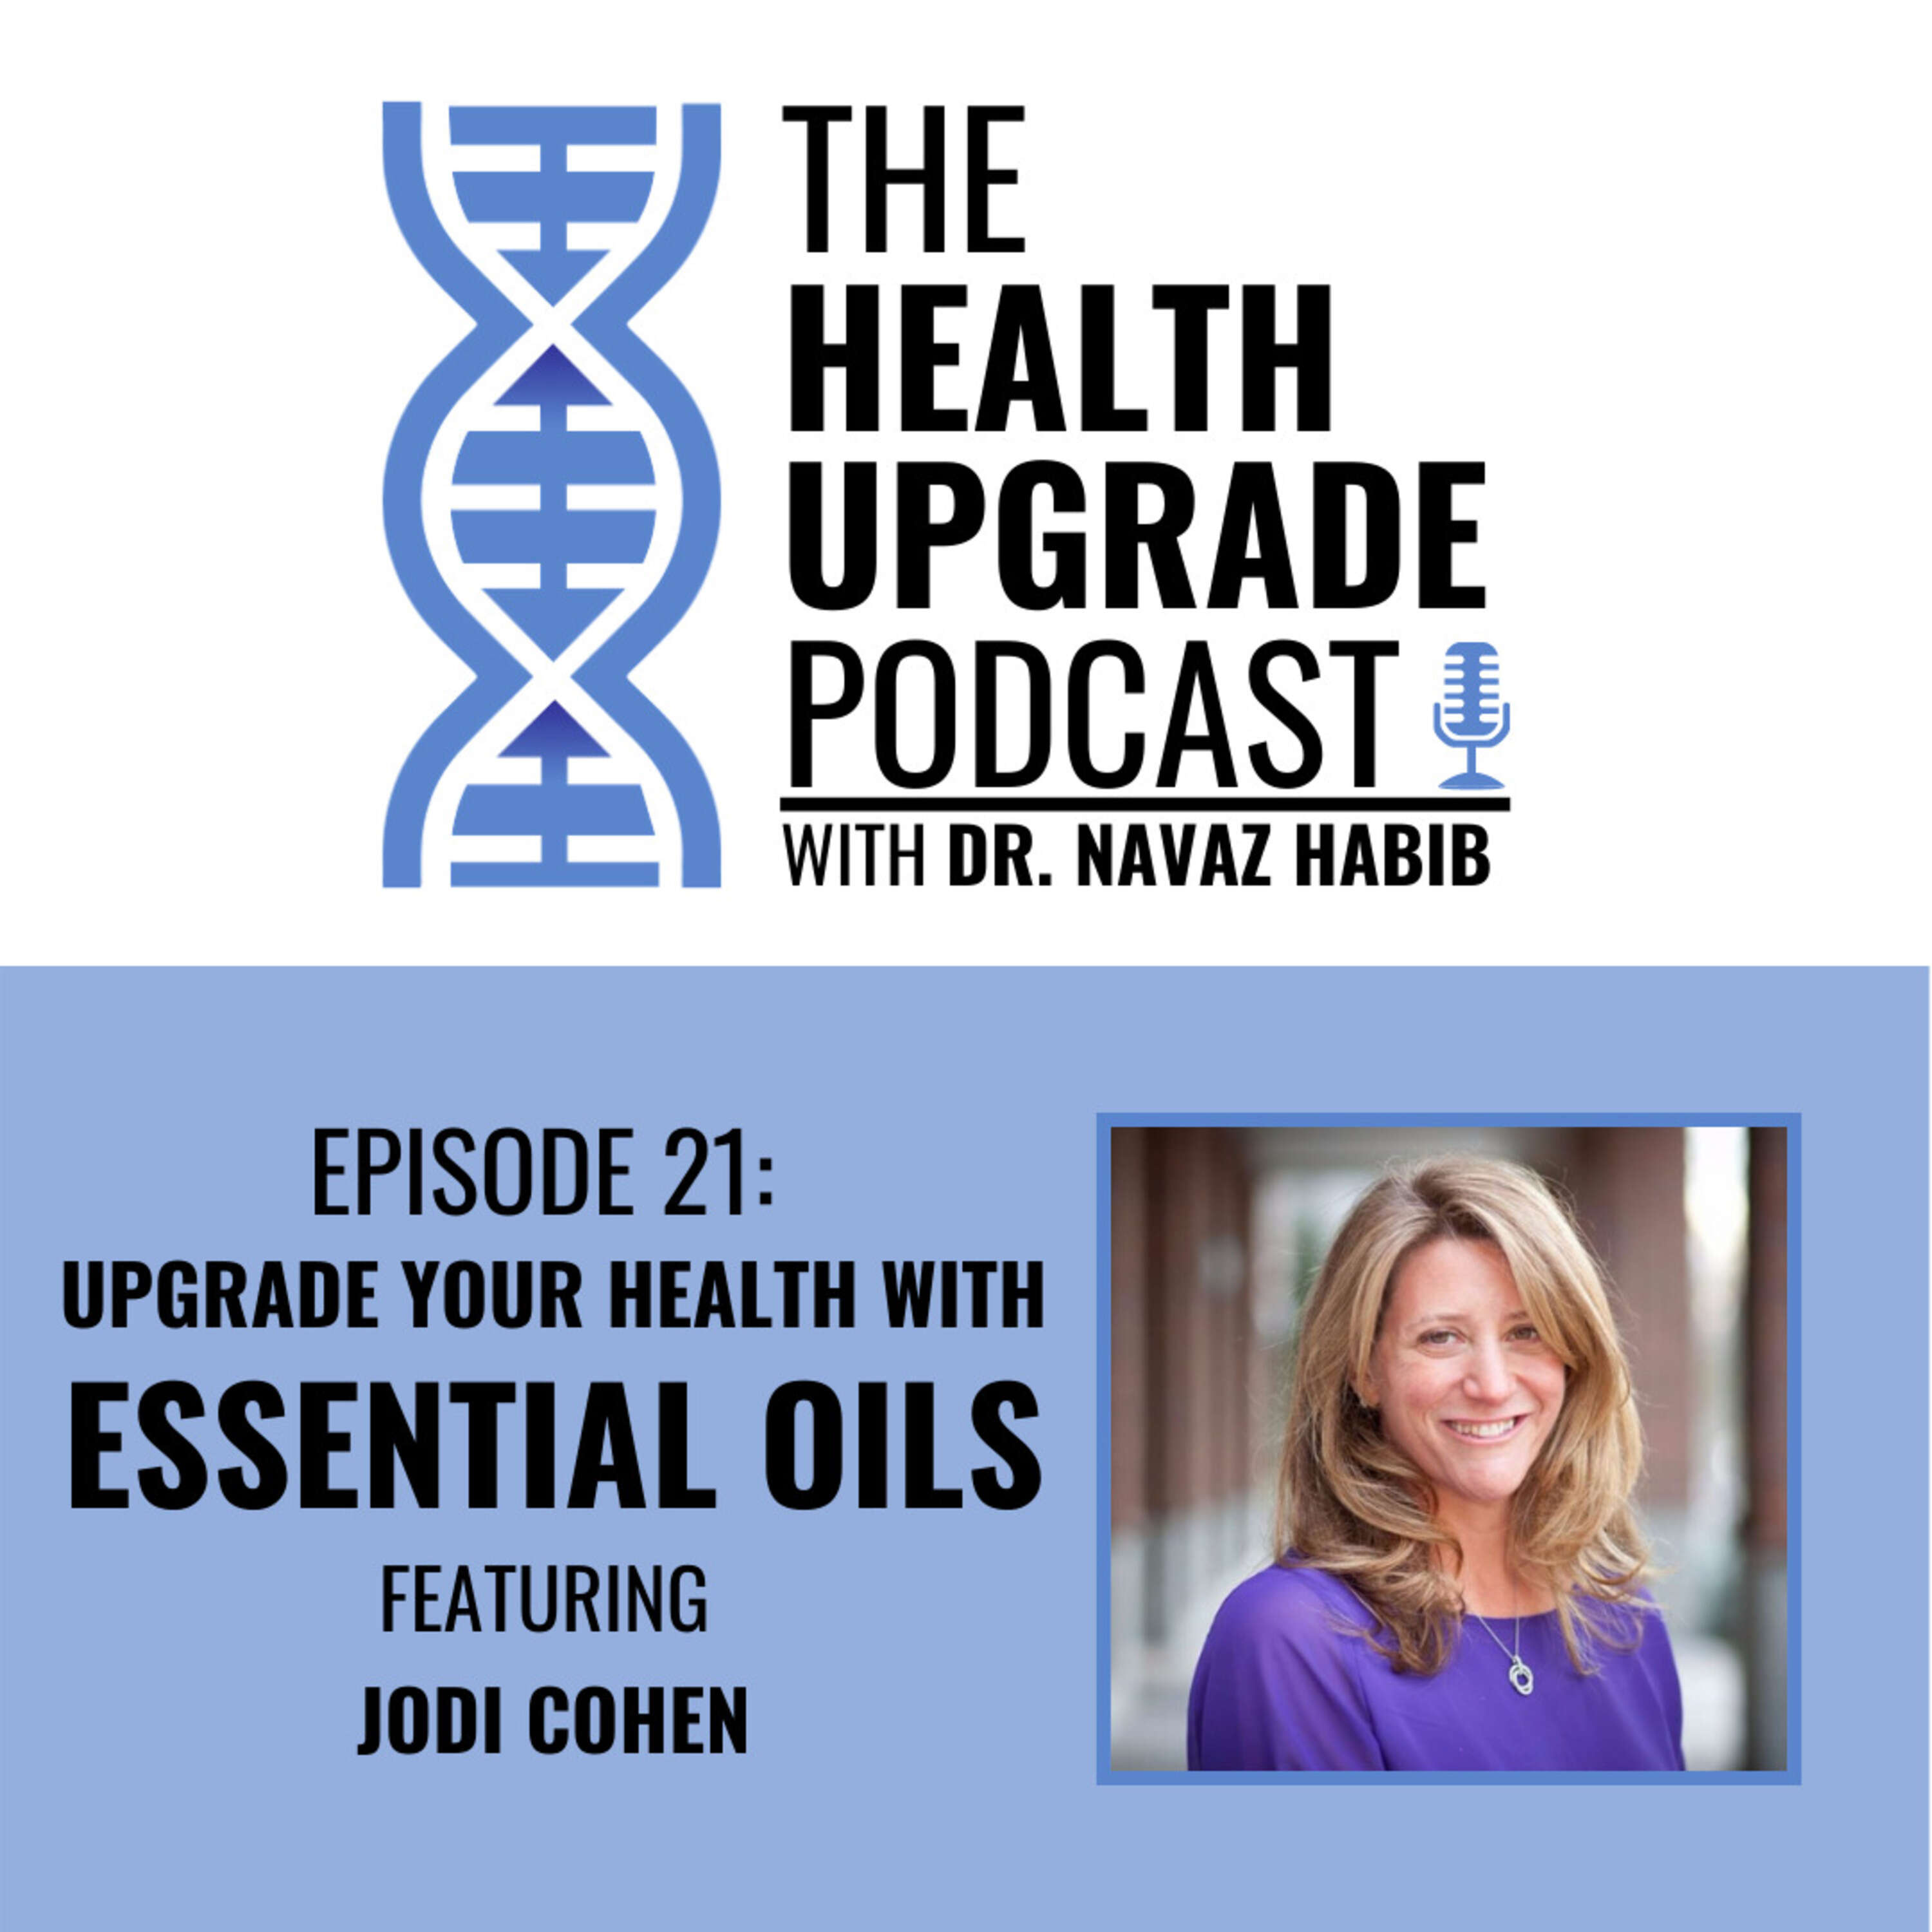 Upgrade your health with essential oils - featuring Jodi Cohen